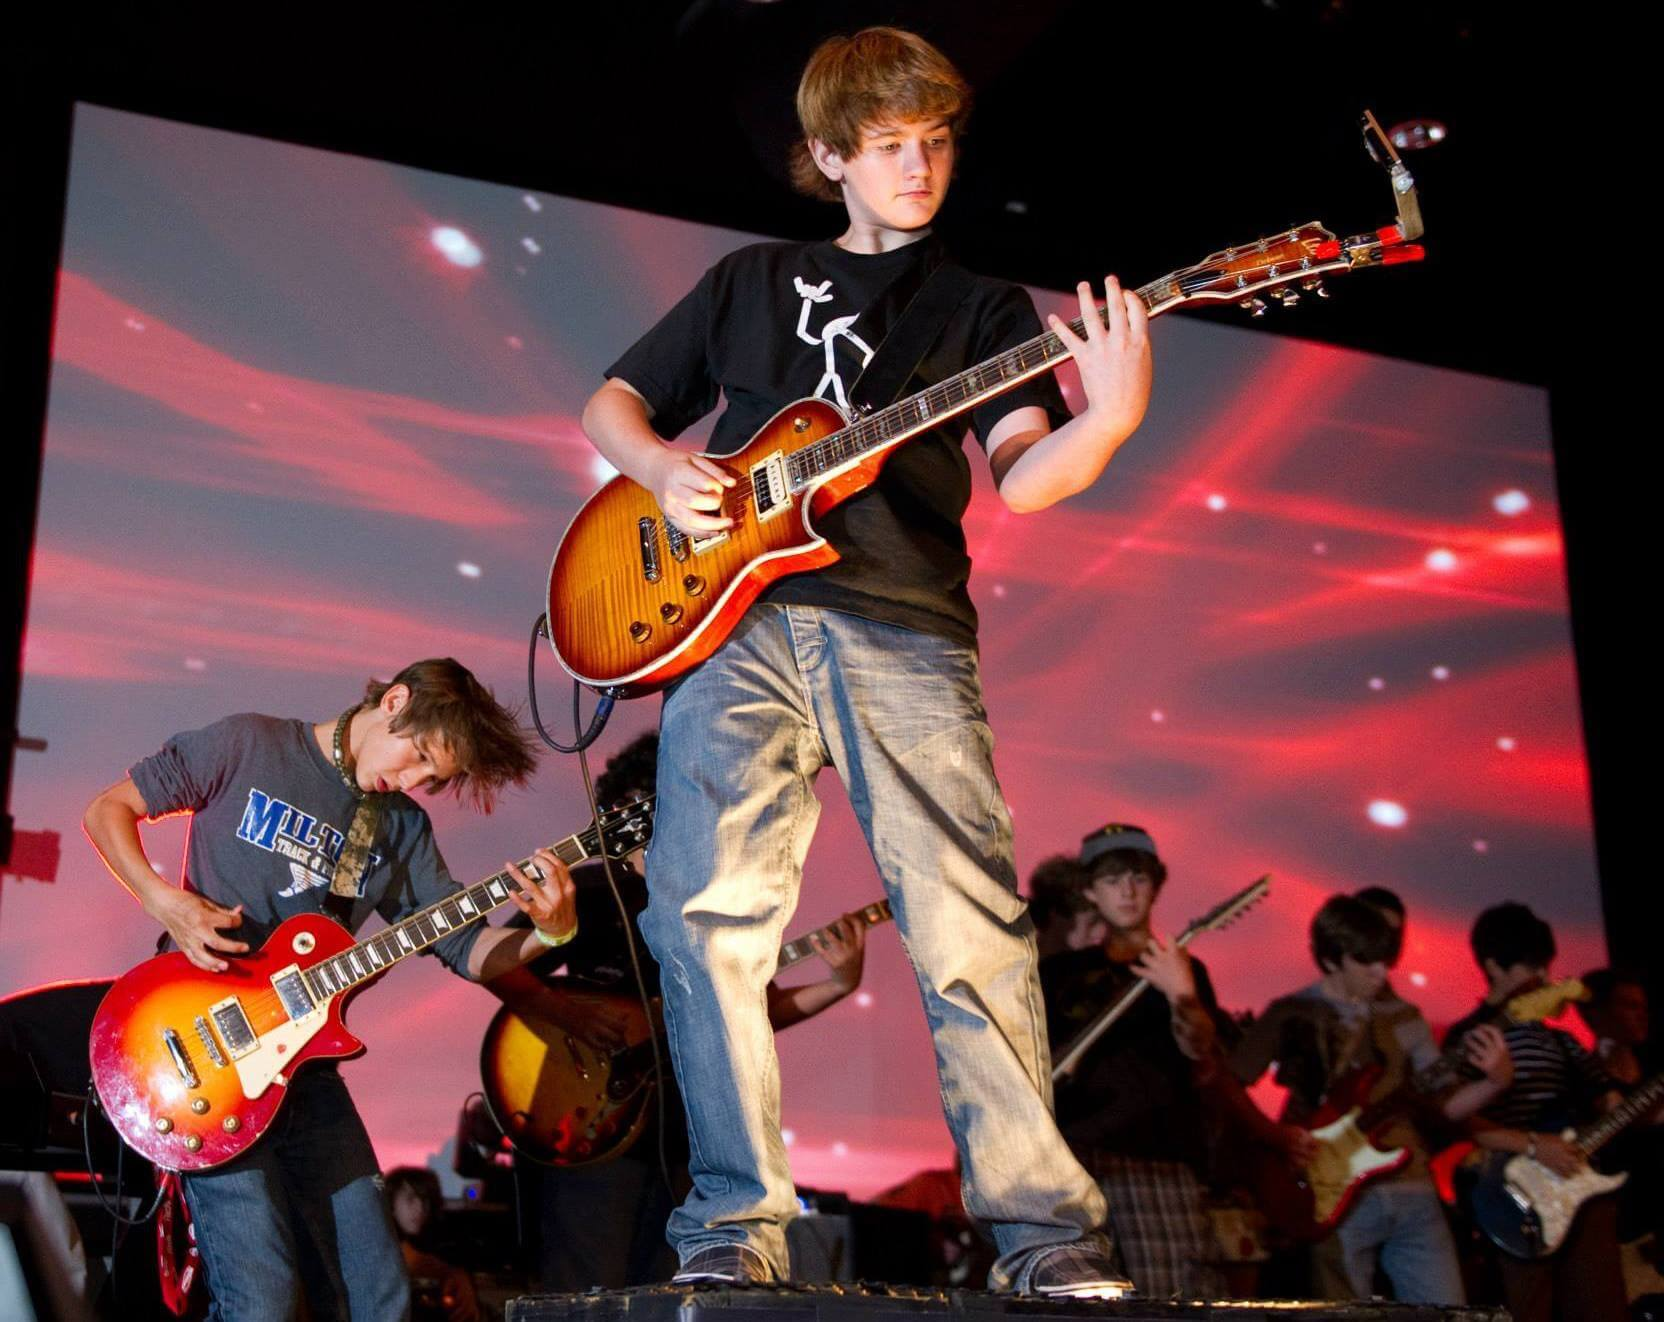 A featured guitarist solos at a Rock Camp concert.